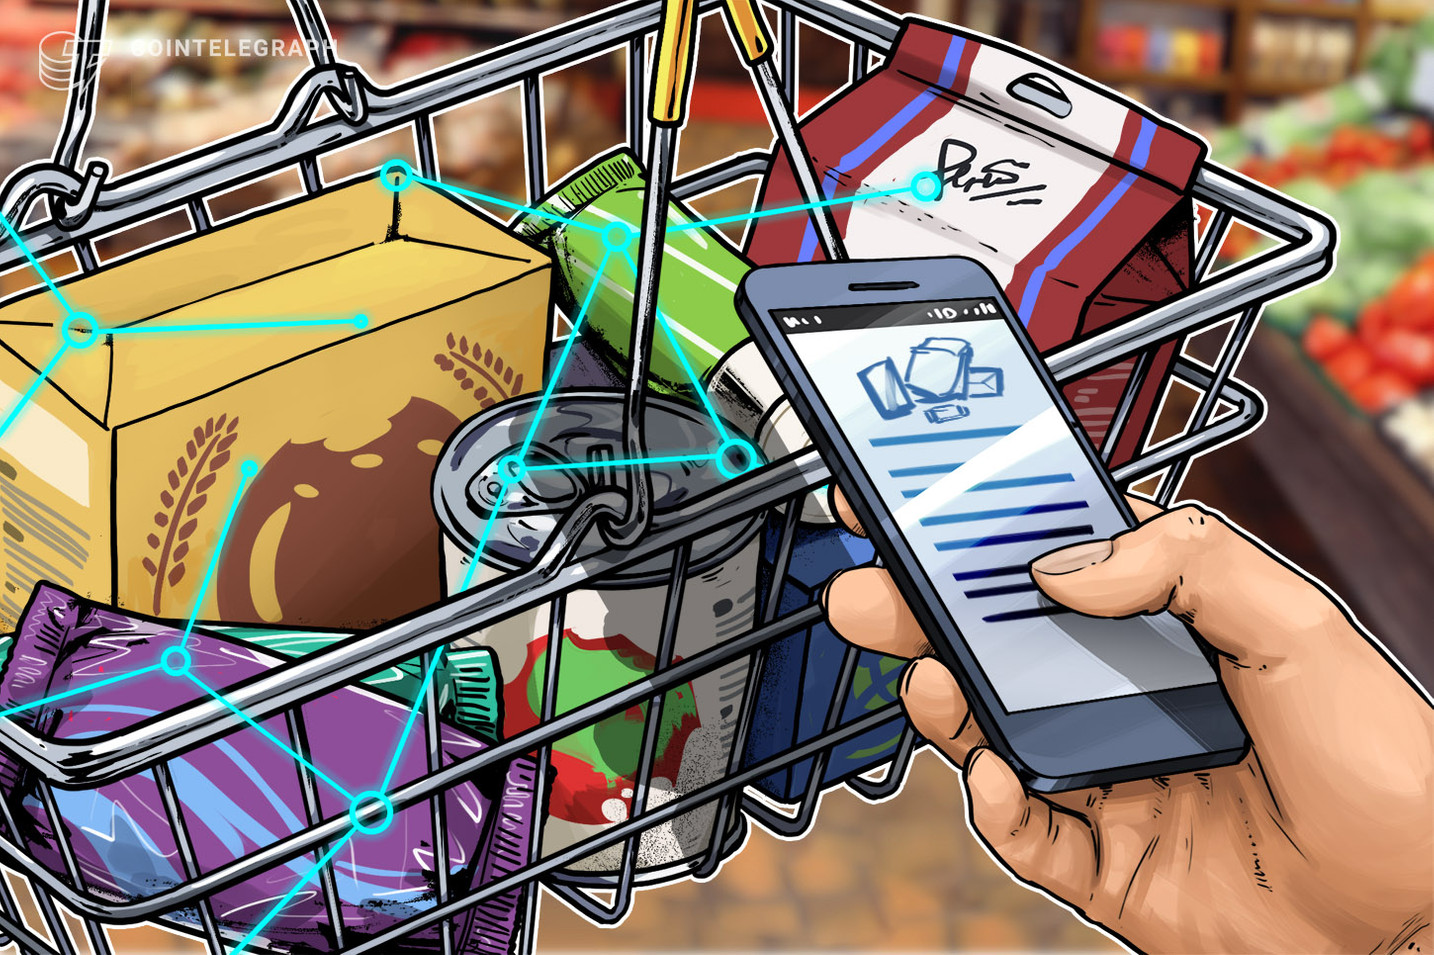 Coupon Industry and DLT: E-Commerce Grows With World Cooped Up at Home